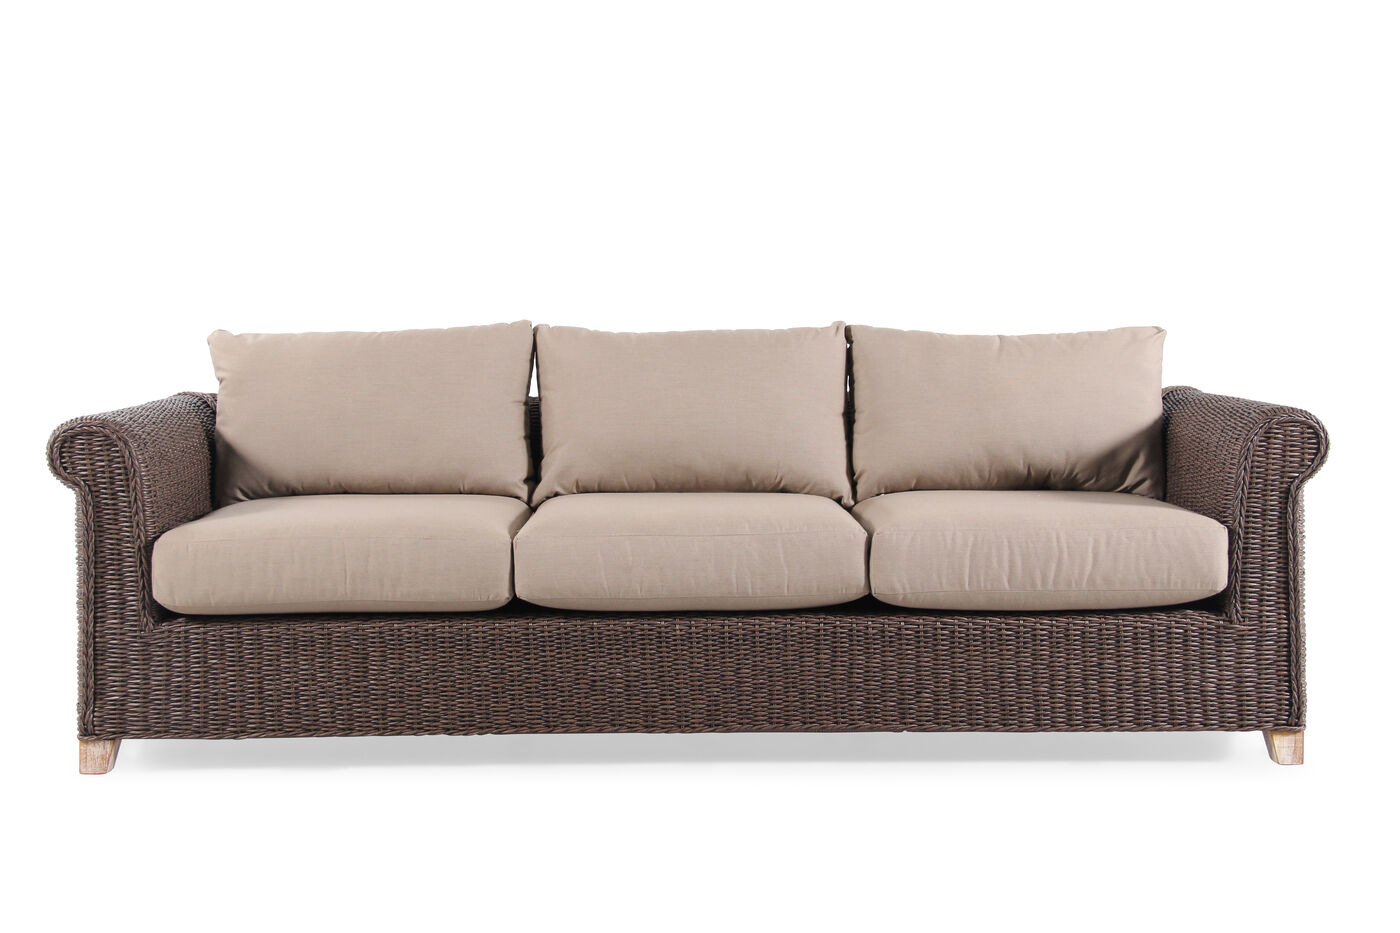 Outdoor Wicker Sofa from World Source